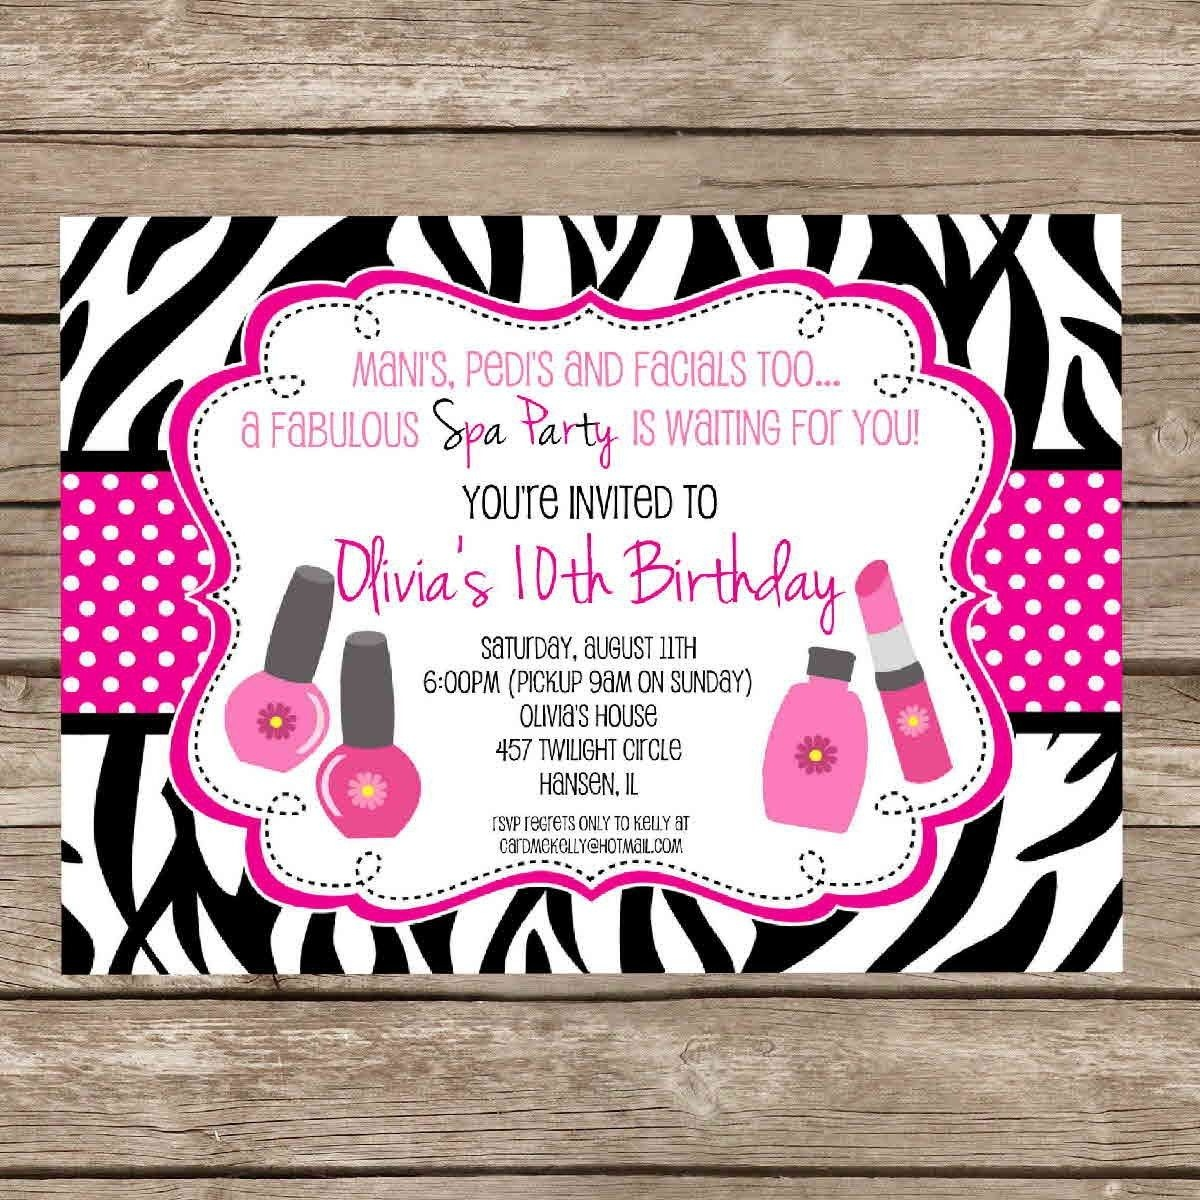 Printable Birthday Invitations For Girls | Free Printable Birthday - Free Printable Birthday Invitations For Girl